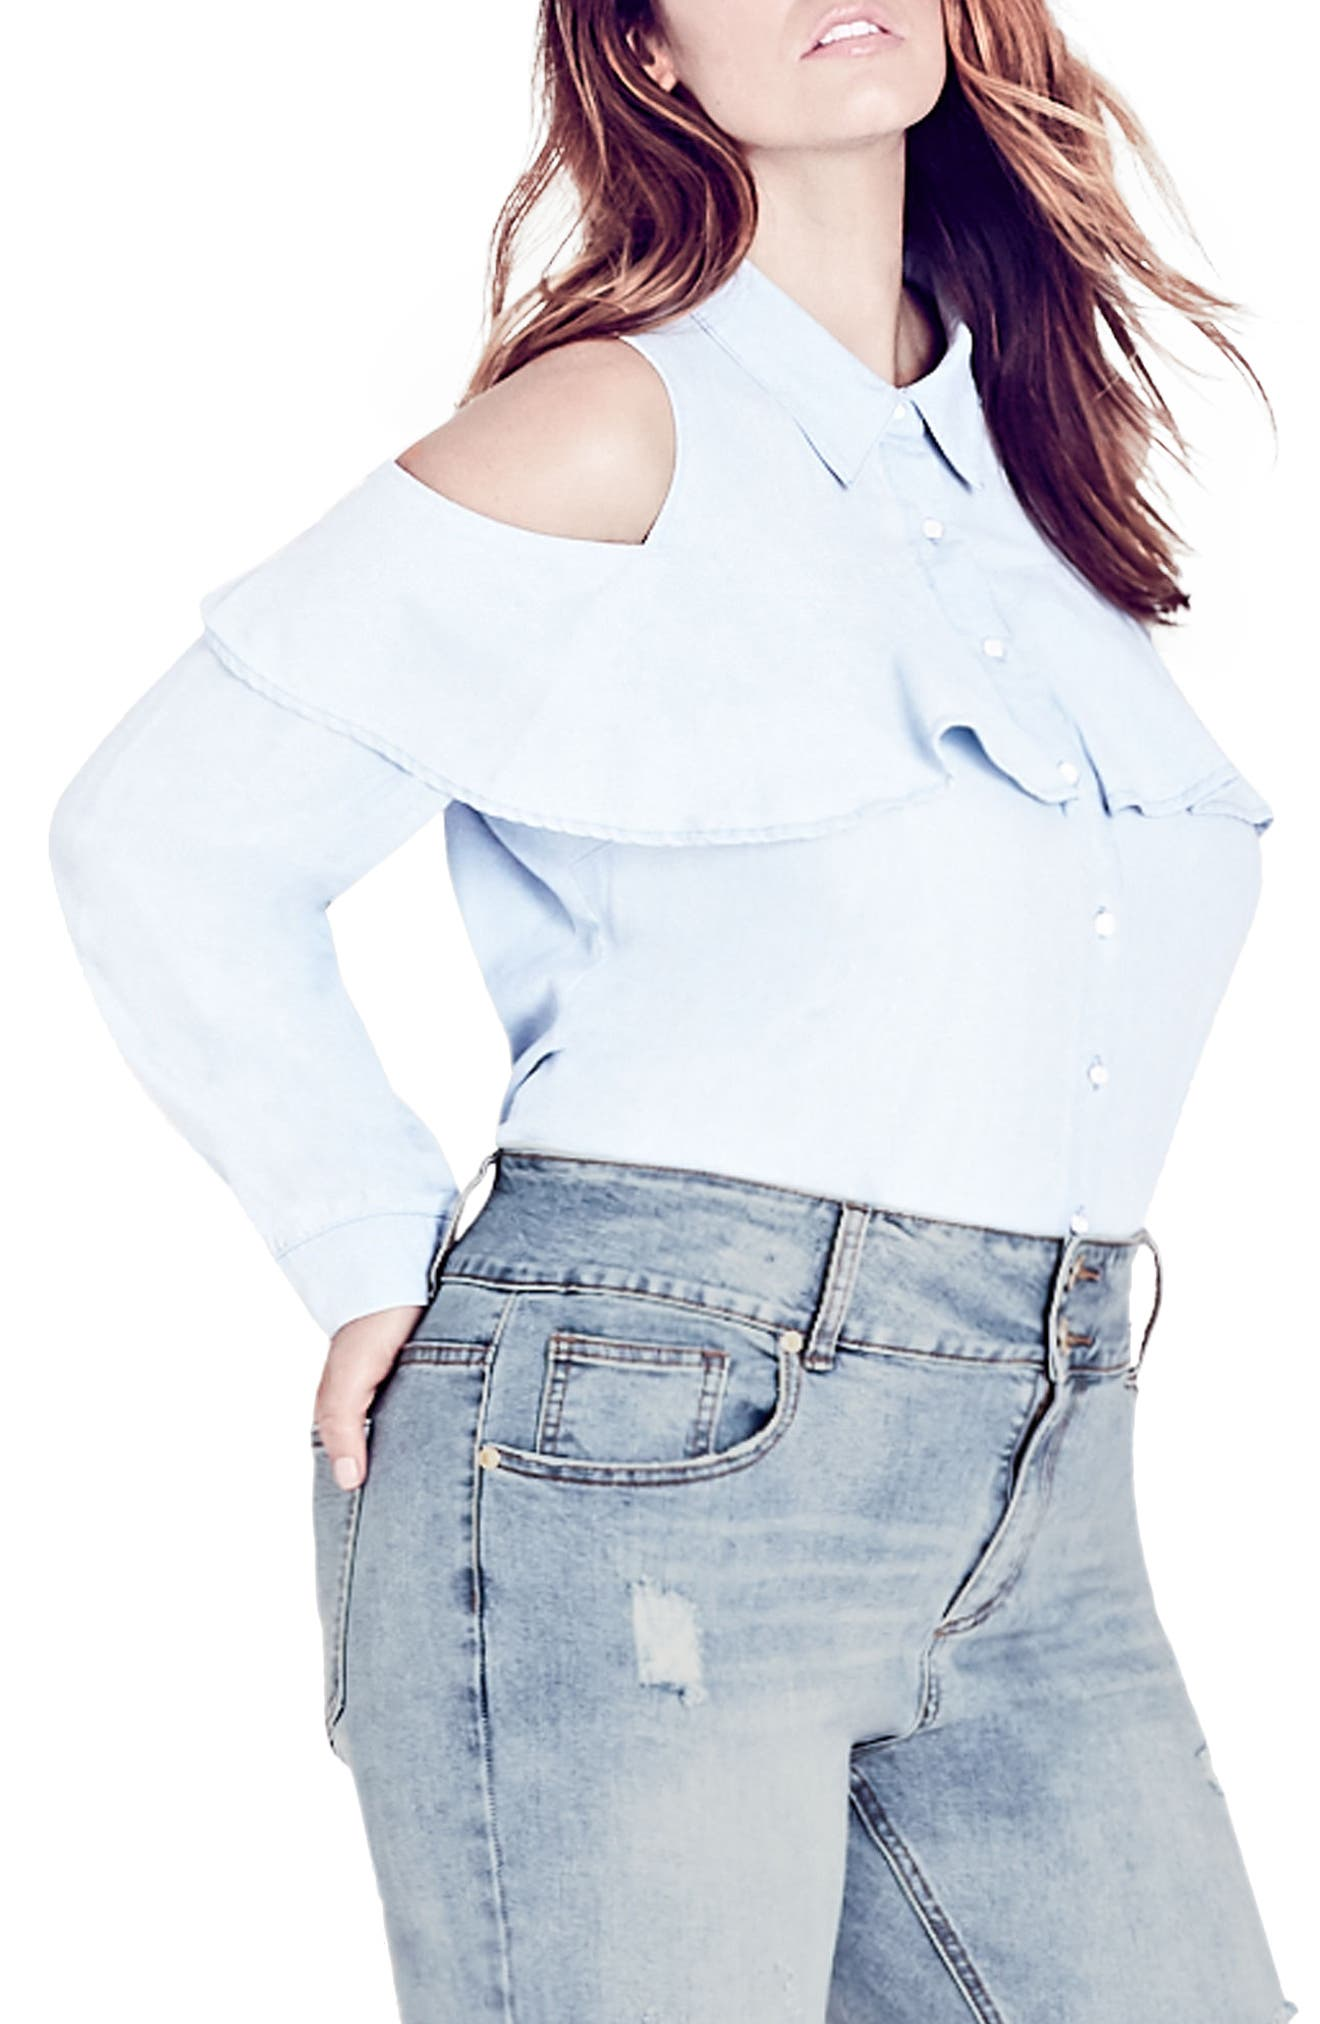 Alternate Image 1 Selected - City Chic Denim Frill Shirt (Plus Size)